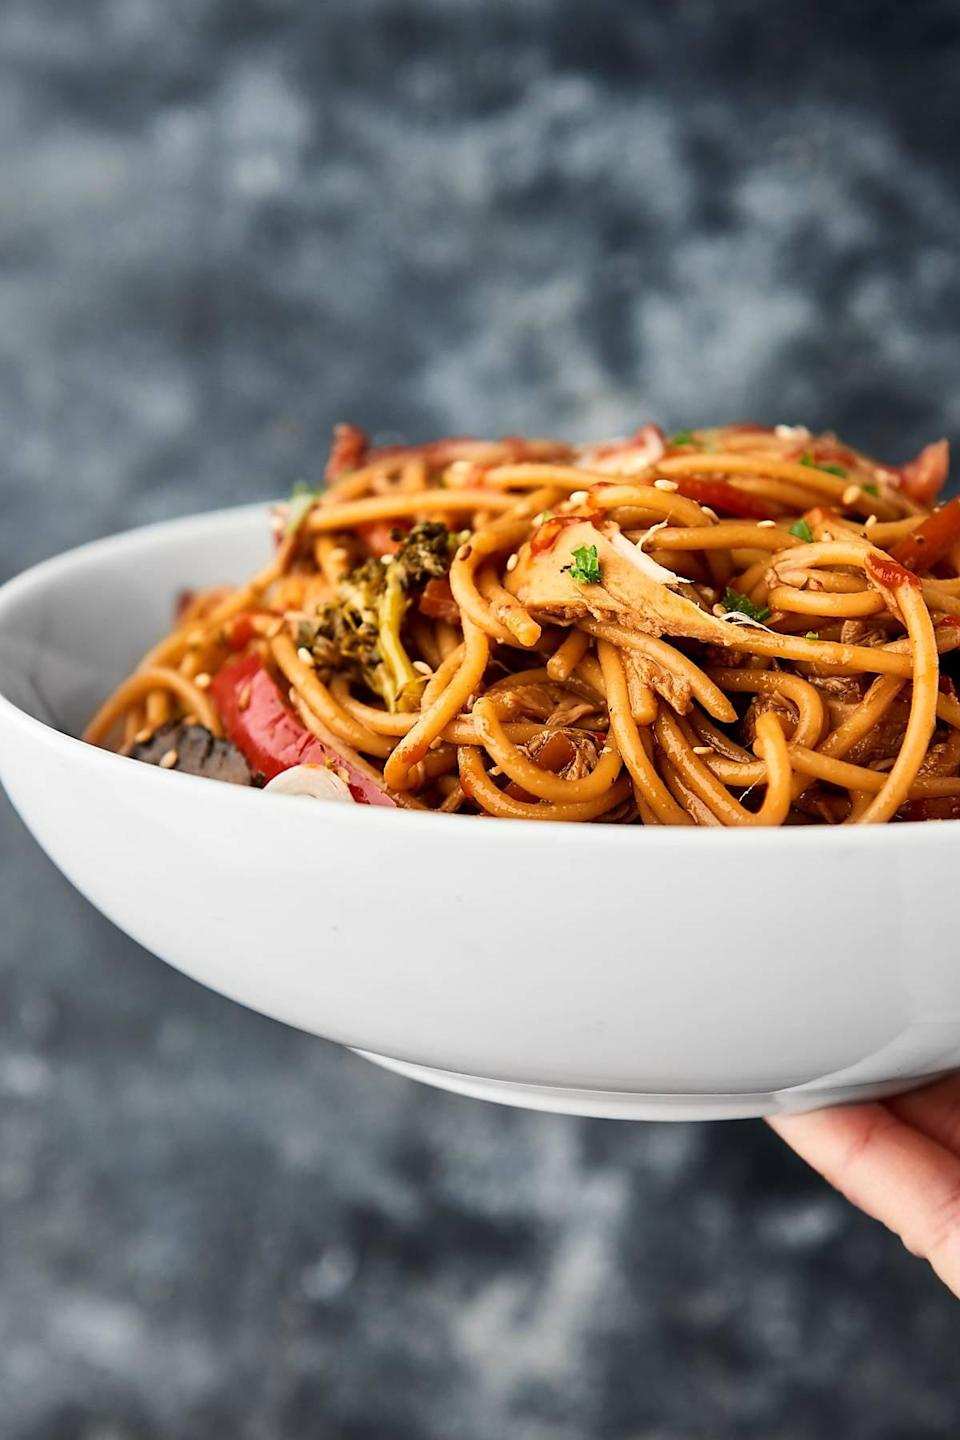 """<p>Craving takeout but not in the mood to go pick it up? This is the recipe for you! It's lighter and healthier than the traditional lo mein, but it still has all the great flavors. The best part about this recipe is that you can easily tweak how many people you want to feed, so if you're serving two, just note it in the recipe and watch as it updates the ingredient list.</p> <p><strong>Get the recipe:</strong> <a href=""""https://showmetheyummy.com/slow-cooker-lo-mein-recipe/"""" class=""""link rapid-noclick-resp"""" rel=""""nofollow noopener"""" target=""""_blank"""" data-ylk=""""slk:slow-cooker lo mein"""">slow-cooker lo mein</a></p>"""